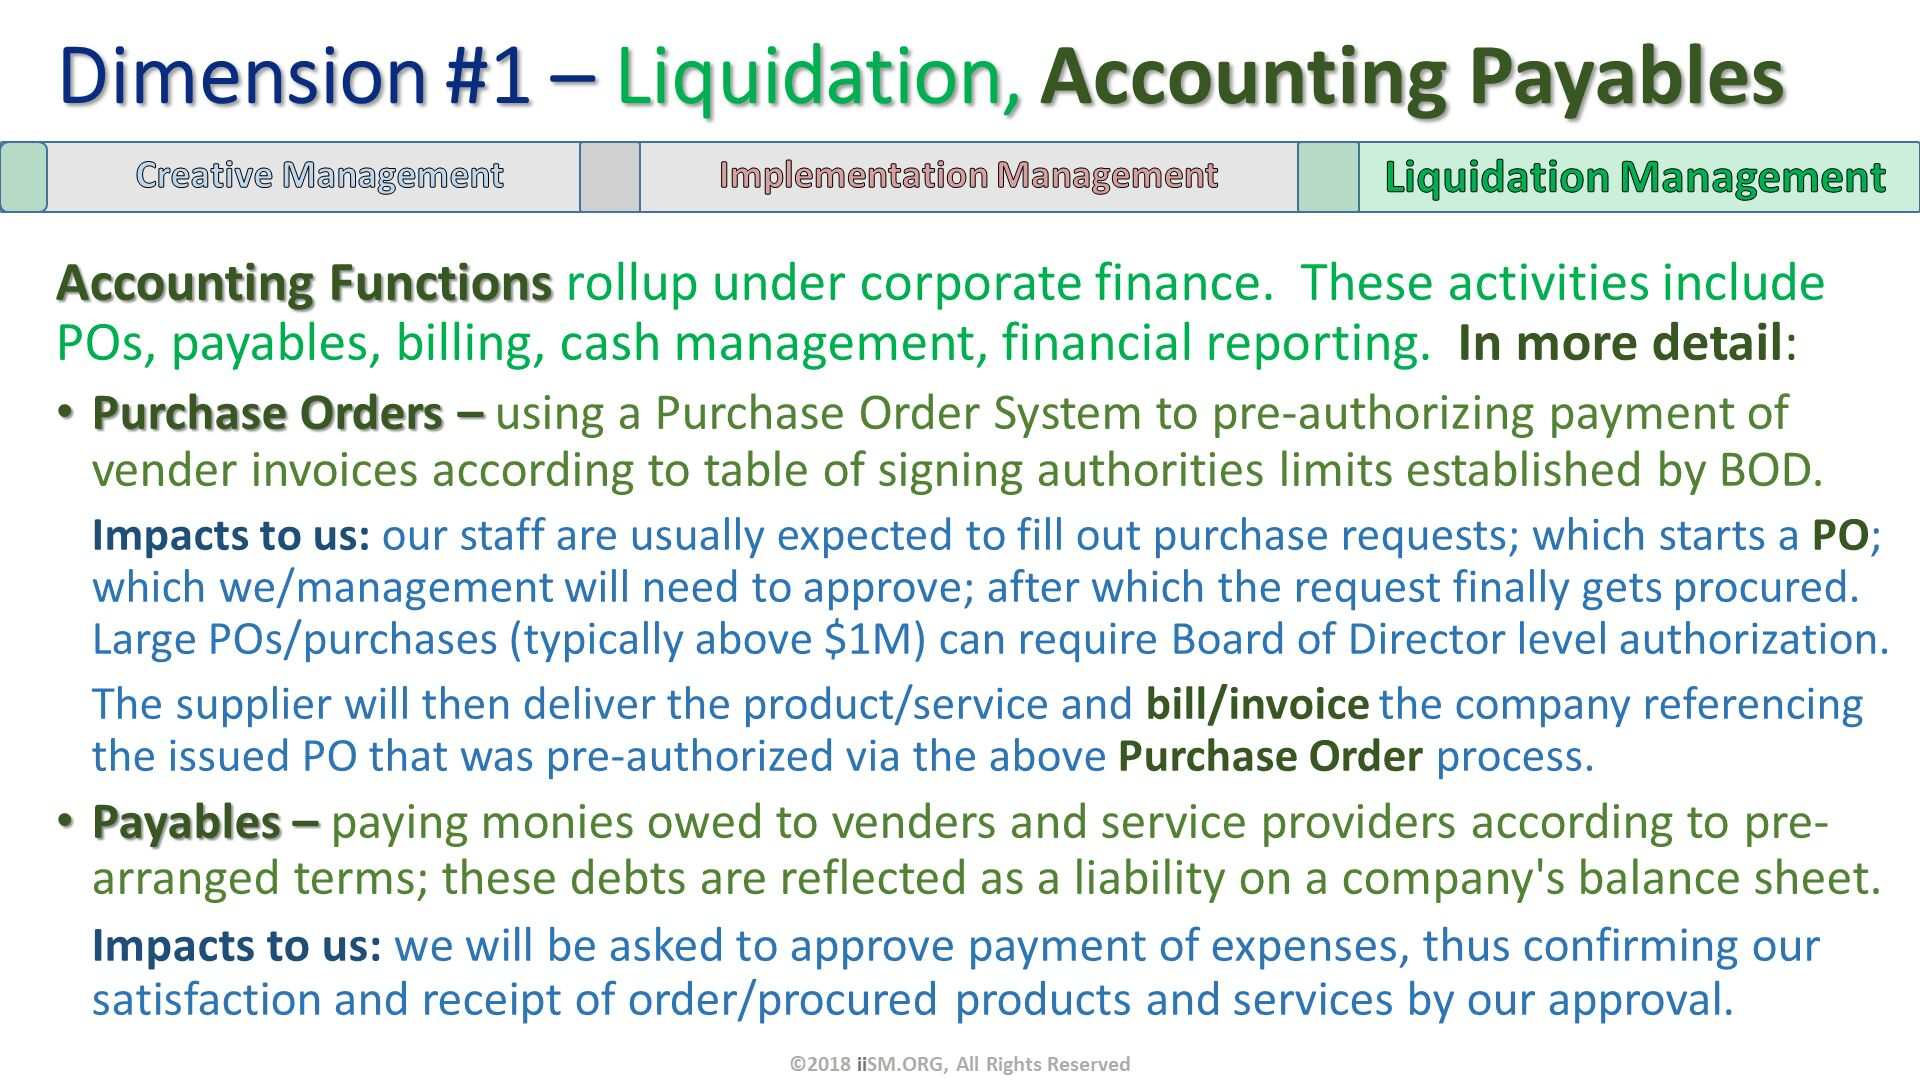 Accounting Functions rollup under corporate finance.  These activities include POs, payables, billing, cash management, financial reporting.  In more detail: Purchase Orders – using a Purchase Order System to pre-authorizing payment of vender invoices according to table of signing authorities limits established by BOD.  Impacts to us: our staff are usually expected to fill out purchase requests; which starts a PO; which we/management will need to approve; after which the request finally gets procured. Large POs/purchases (typically above $1M) can require Board of Director level authorization.  The supplier will then deliver the product/service and bill/invoice the company referencing the issued PO that was pre-authorized via the above Purchase Order process. Payables – paying monies owed to venders and service providers according to pre-arranged terms; these debts are reflected as a liability on a company's balance sheet. Impacts to us: we will be asked to approve payment of expenses, thus confirming our satisfaction and receipt of order/procured products and services by our approval.  . Dimension #1 – Liquidation, Accounting Payables. ©2018 iiSM.ORG, All Rights Reserved.